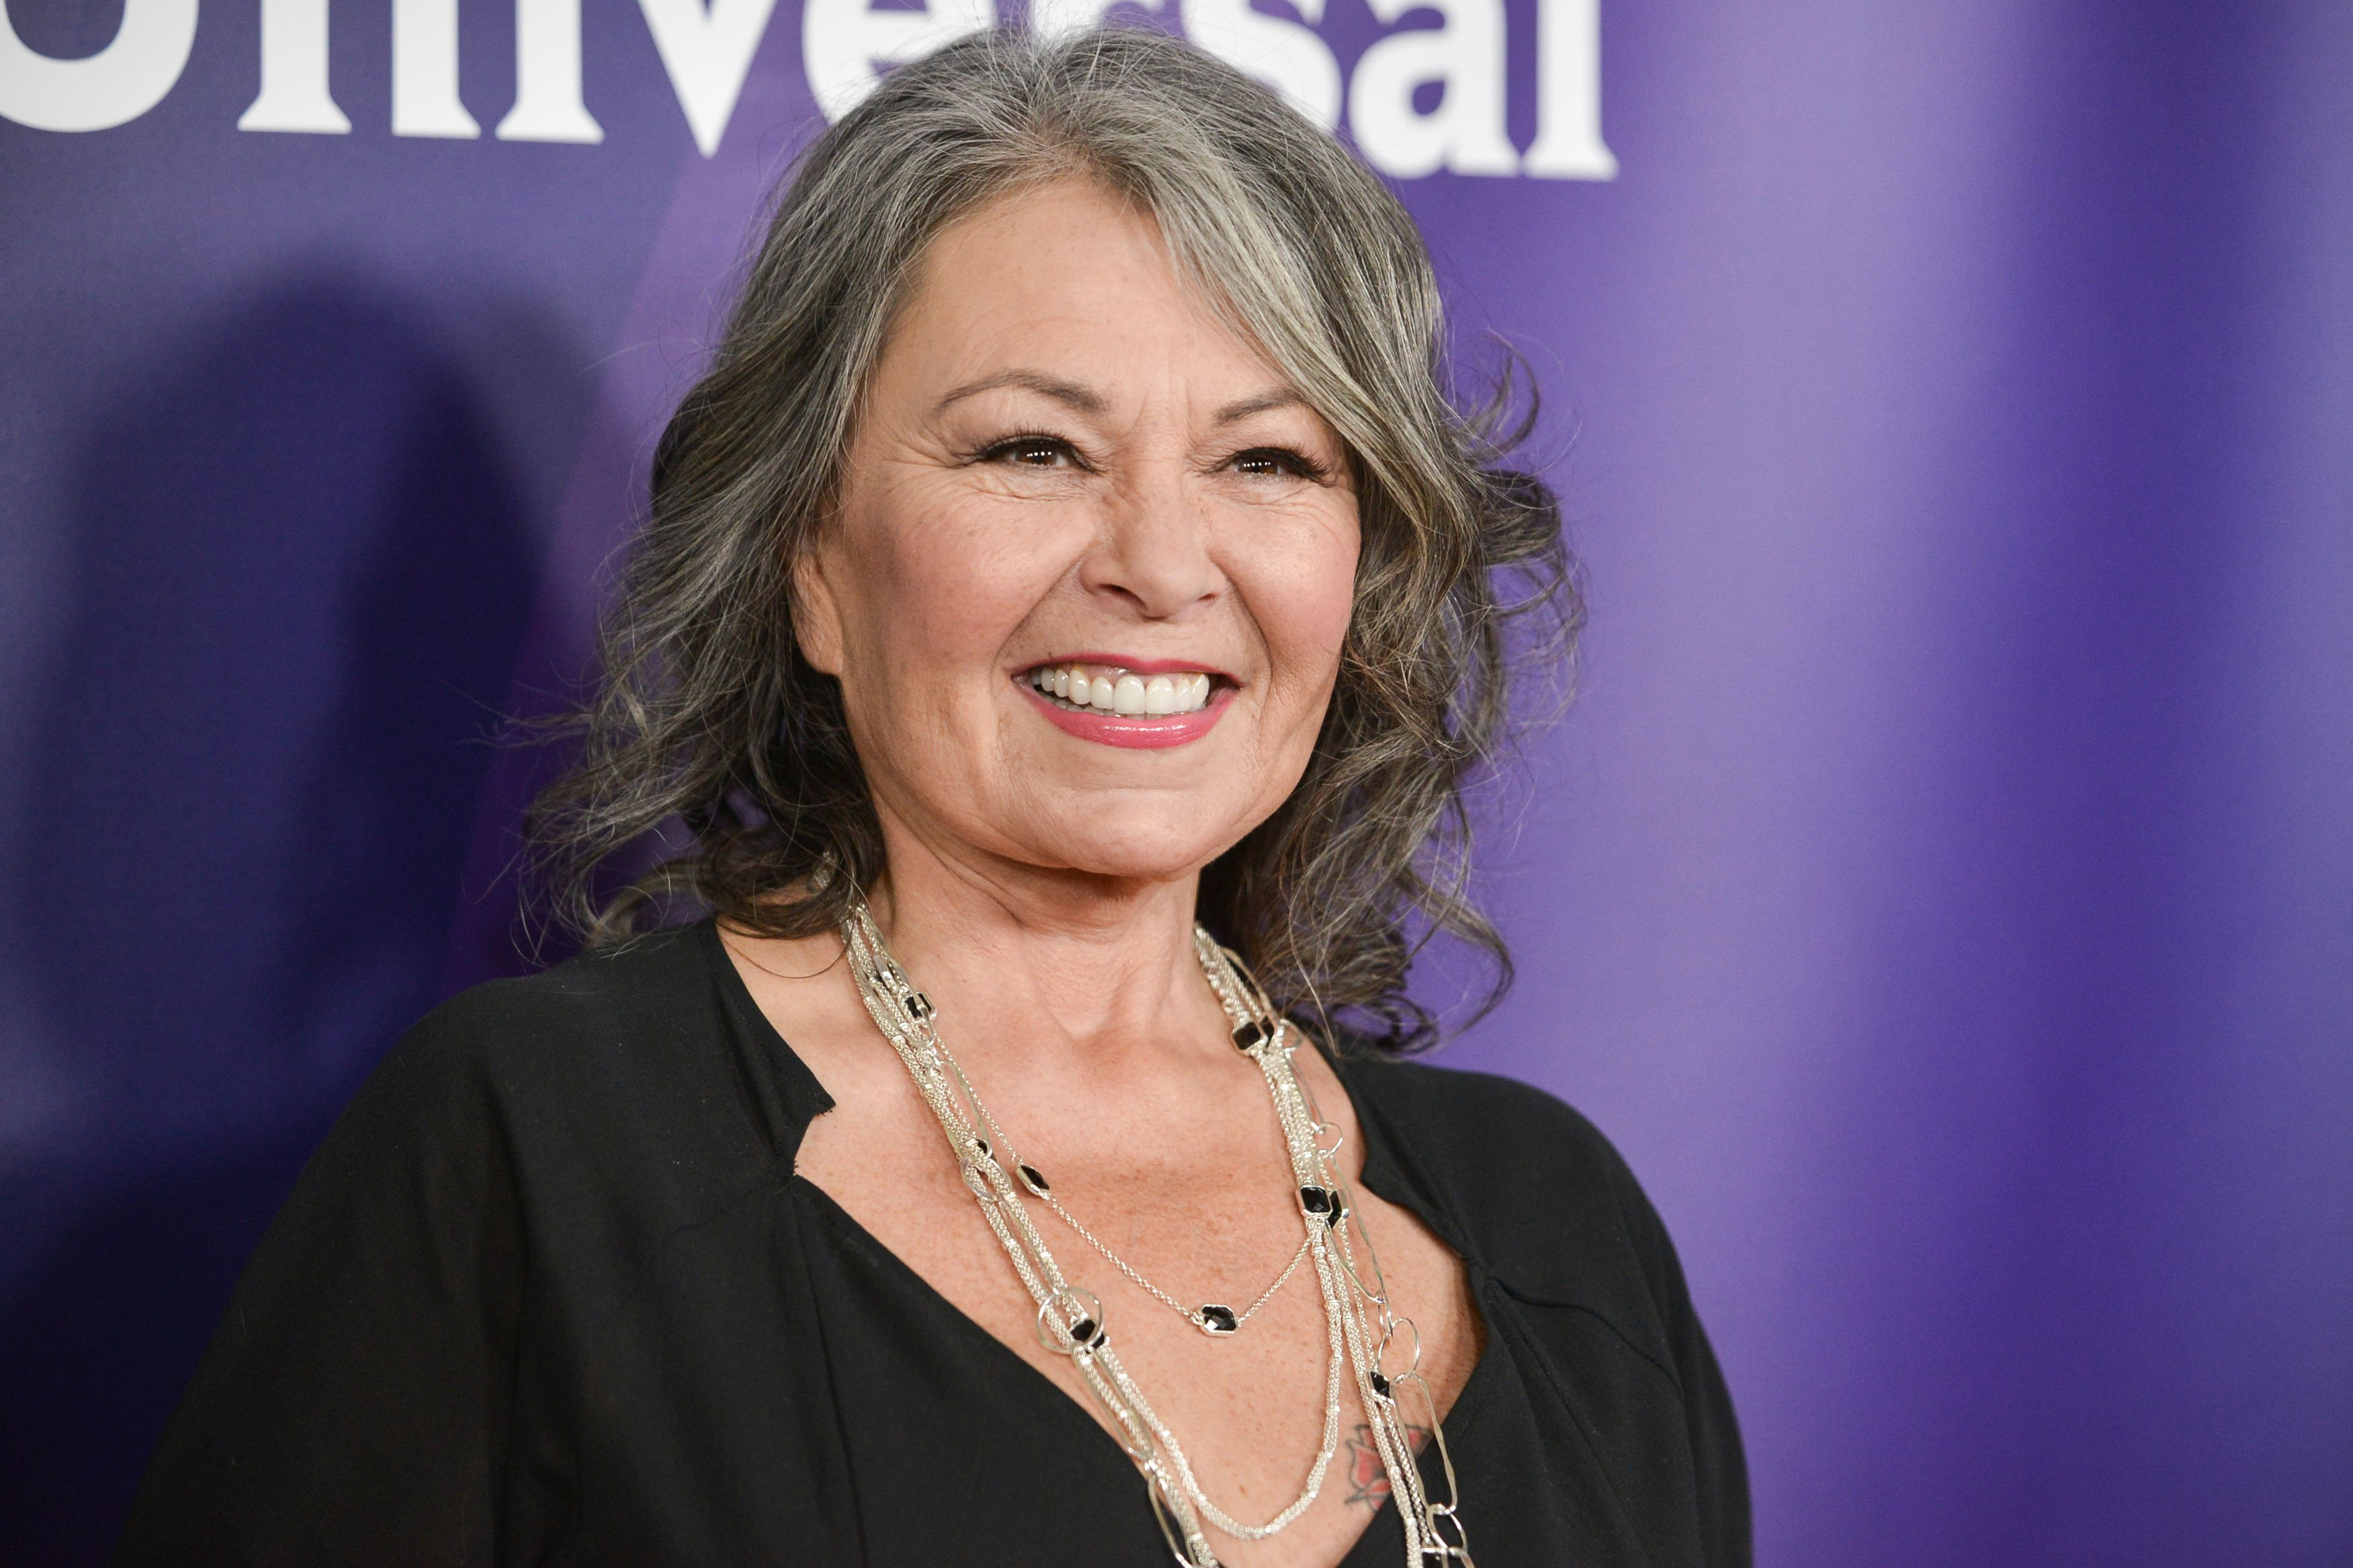 Roseanne Barr looking happy